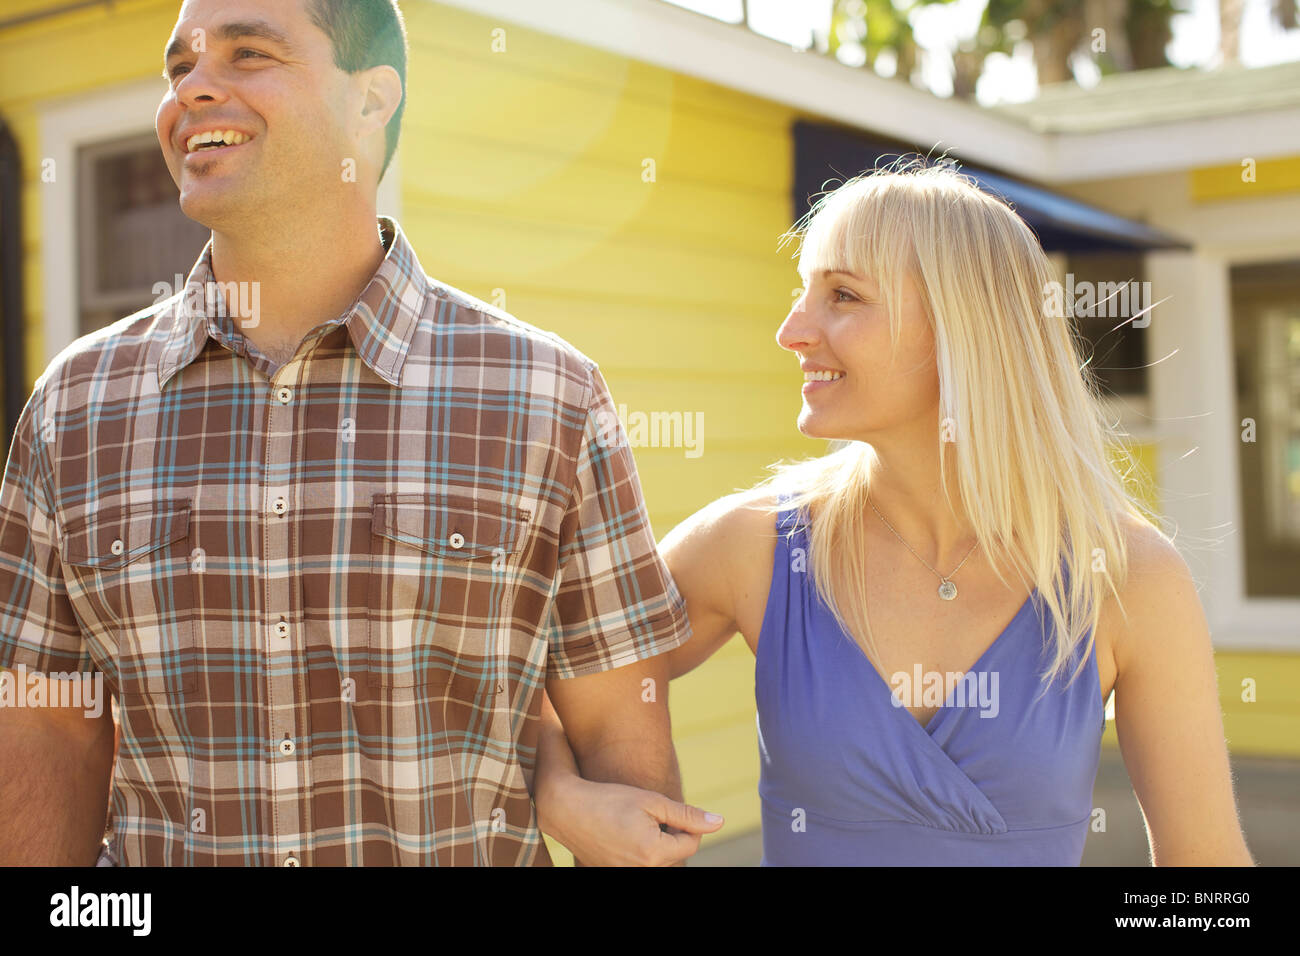 Female puts her arm around male's arm and couple walk together. - Stock Image